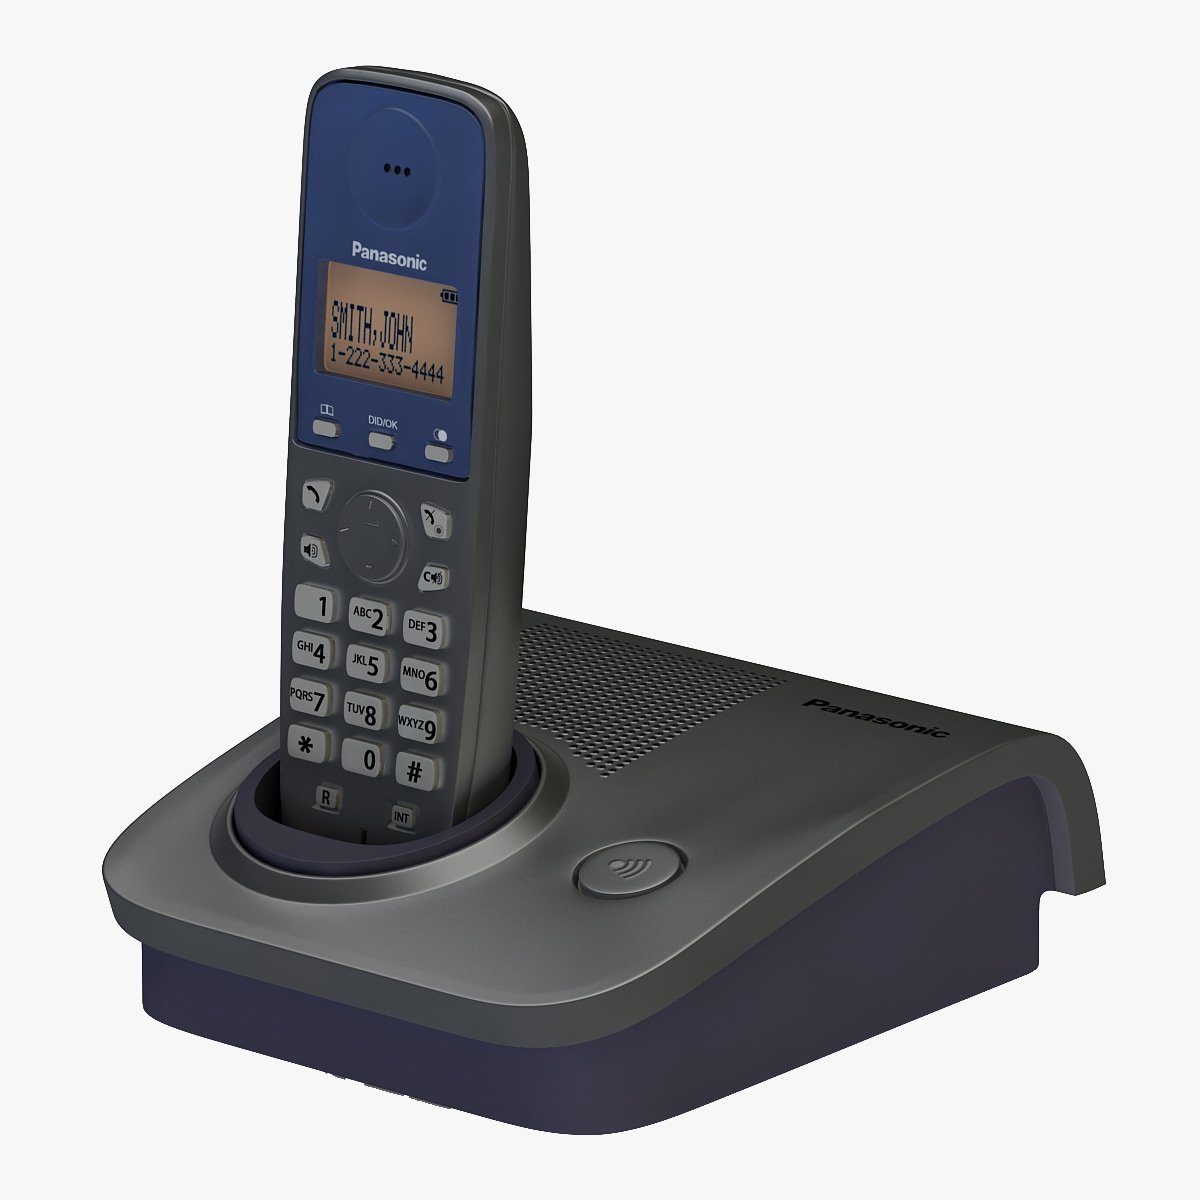 Home_Phone_Panasonic_000.jpg